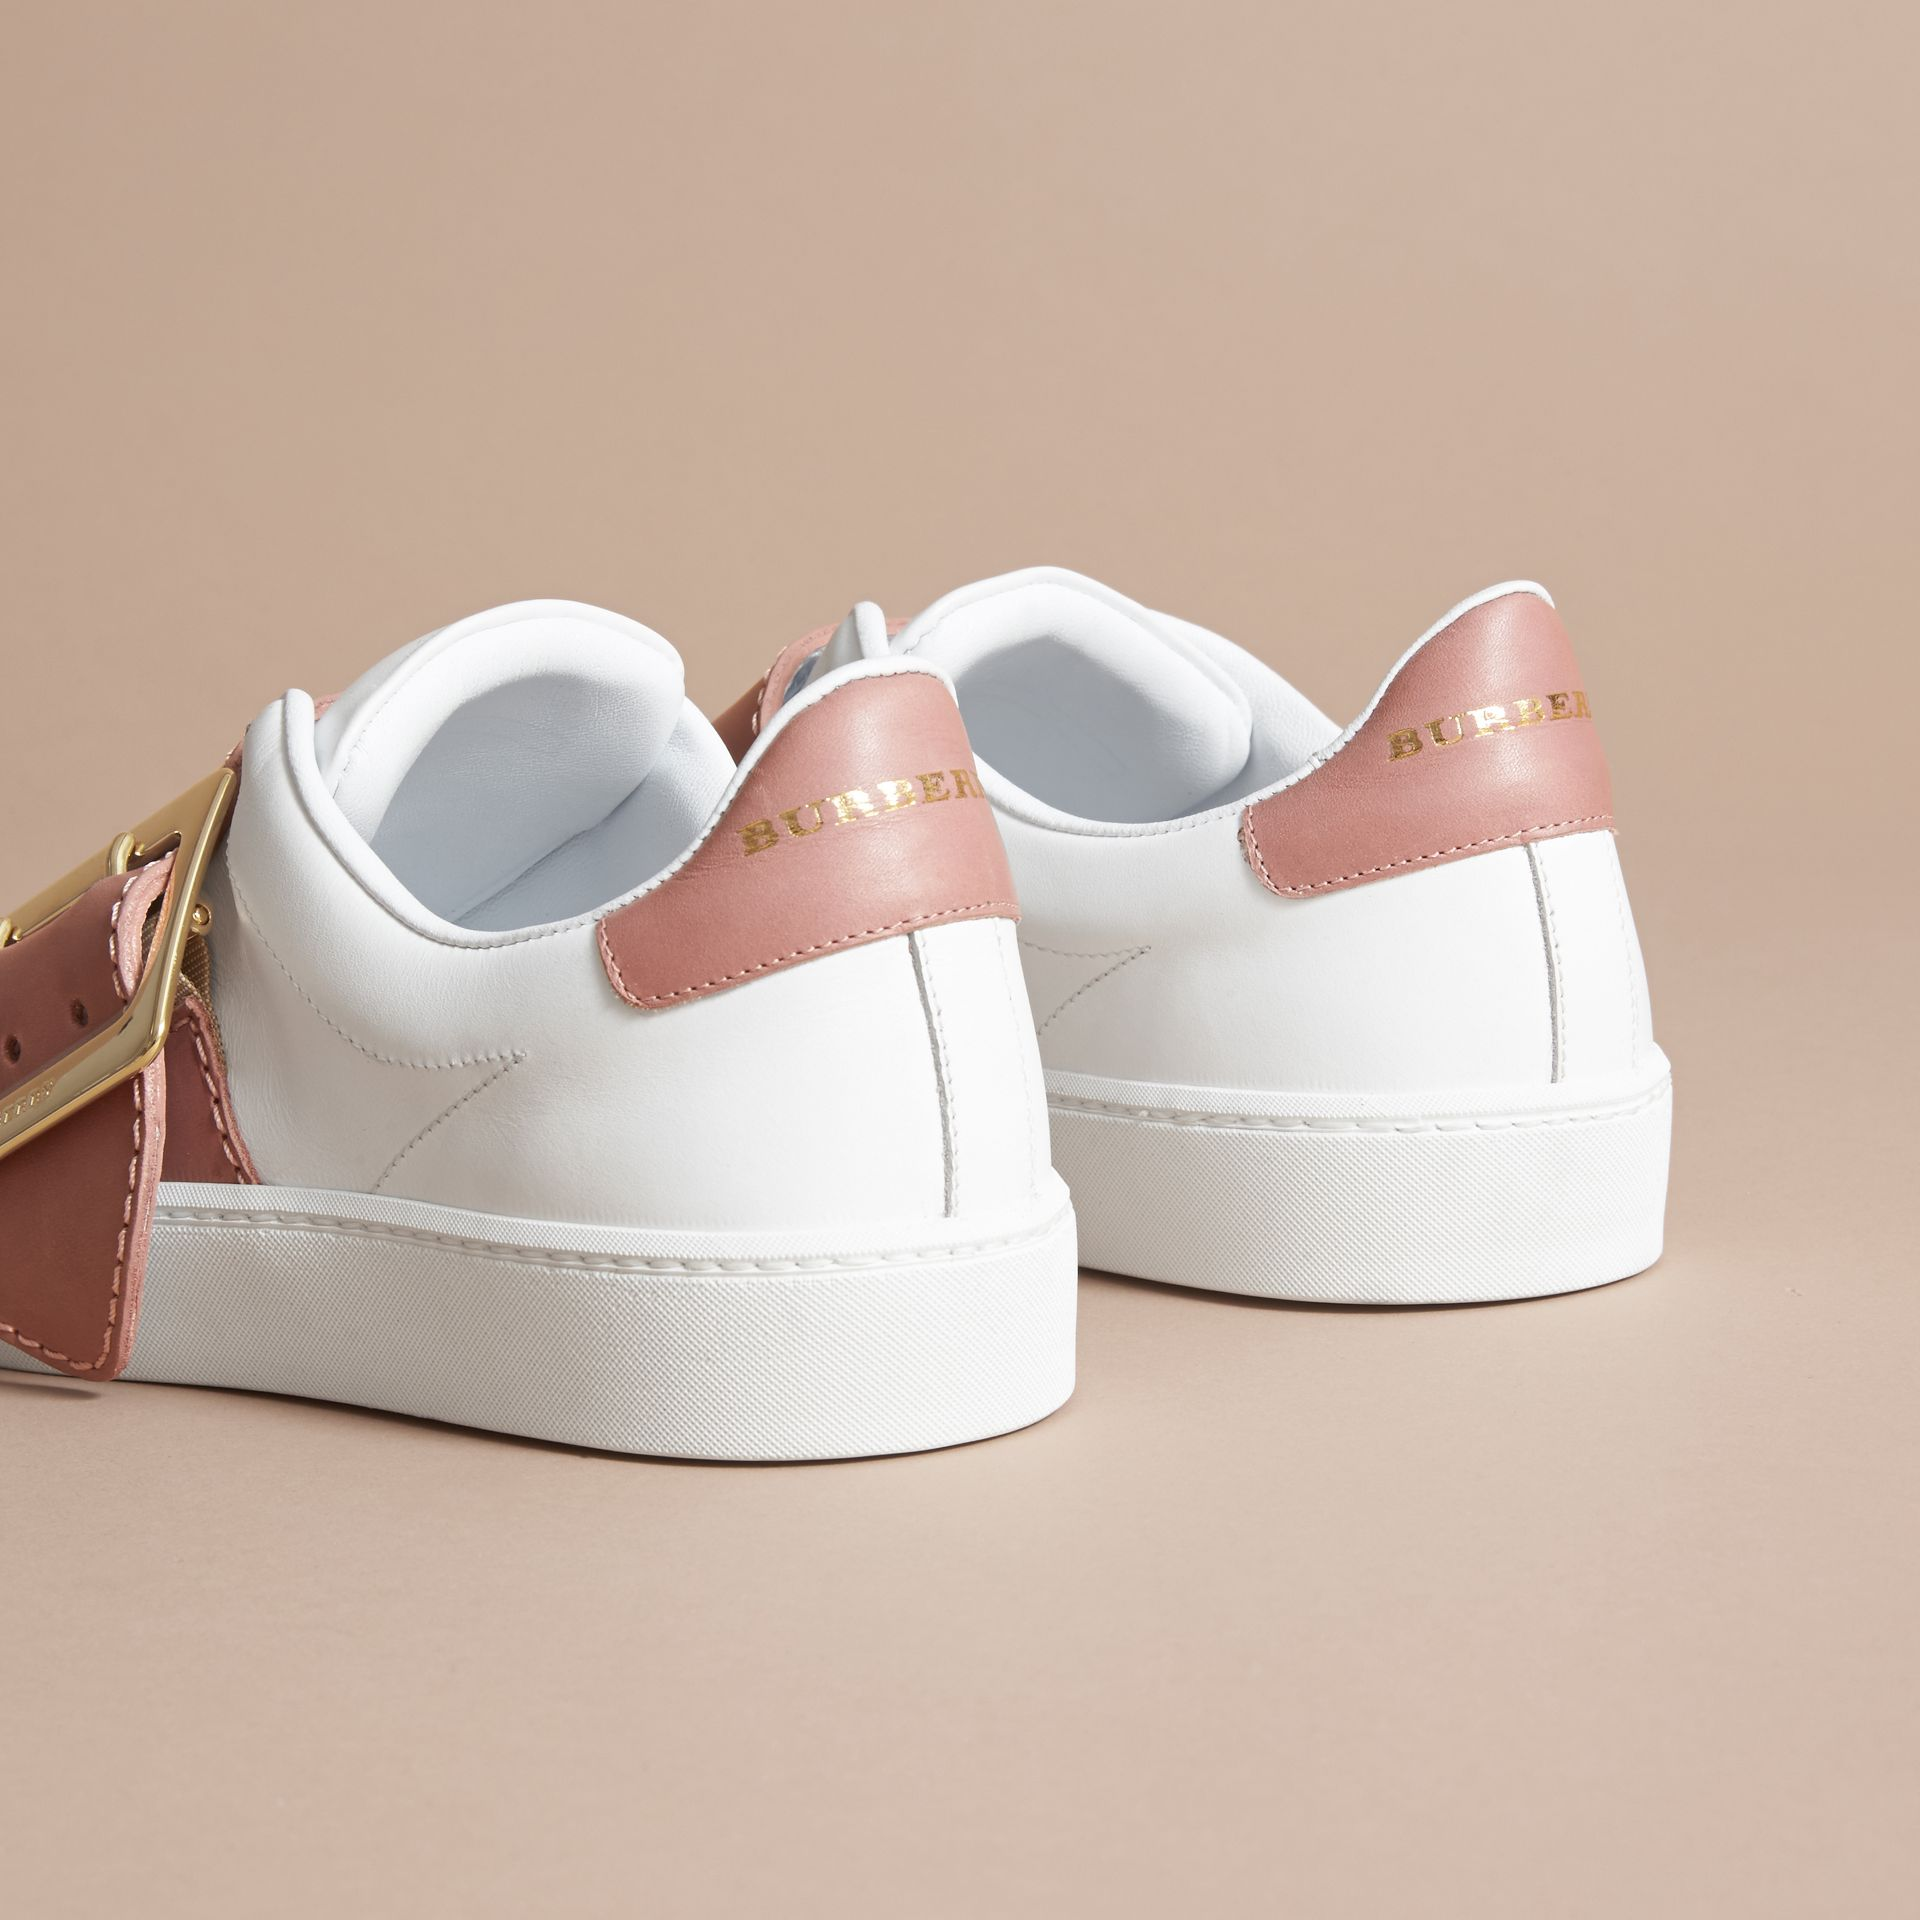 Buckle Detail Leather Trainers in Pink Apricot - Women | Burberry Singapore - gallery image 4